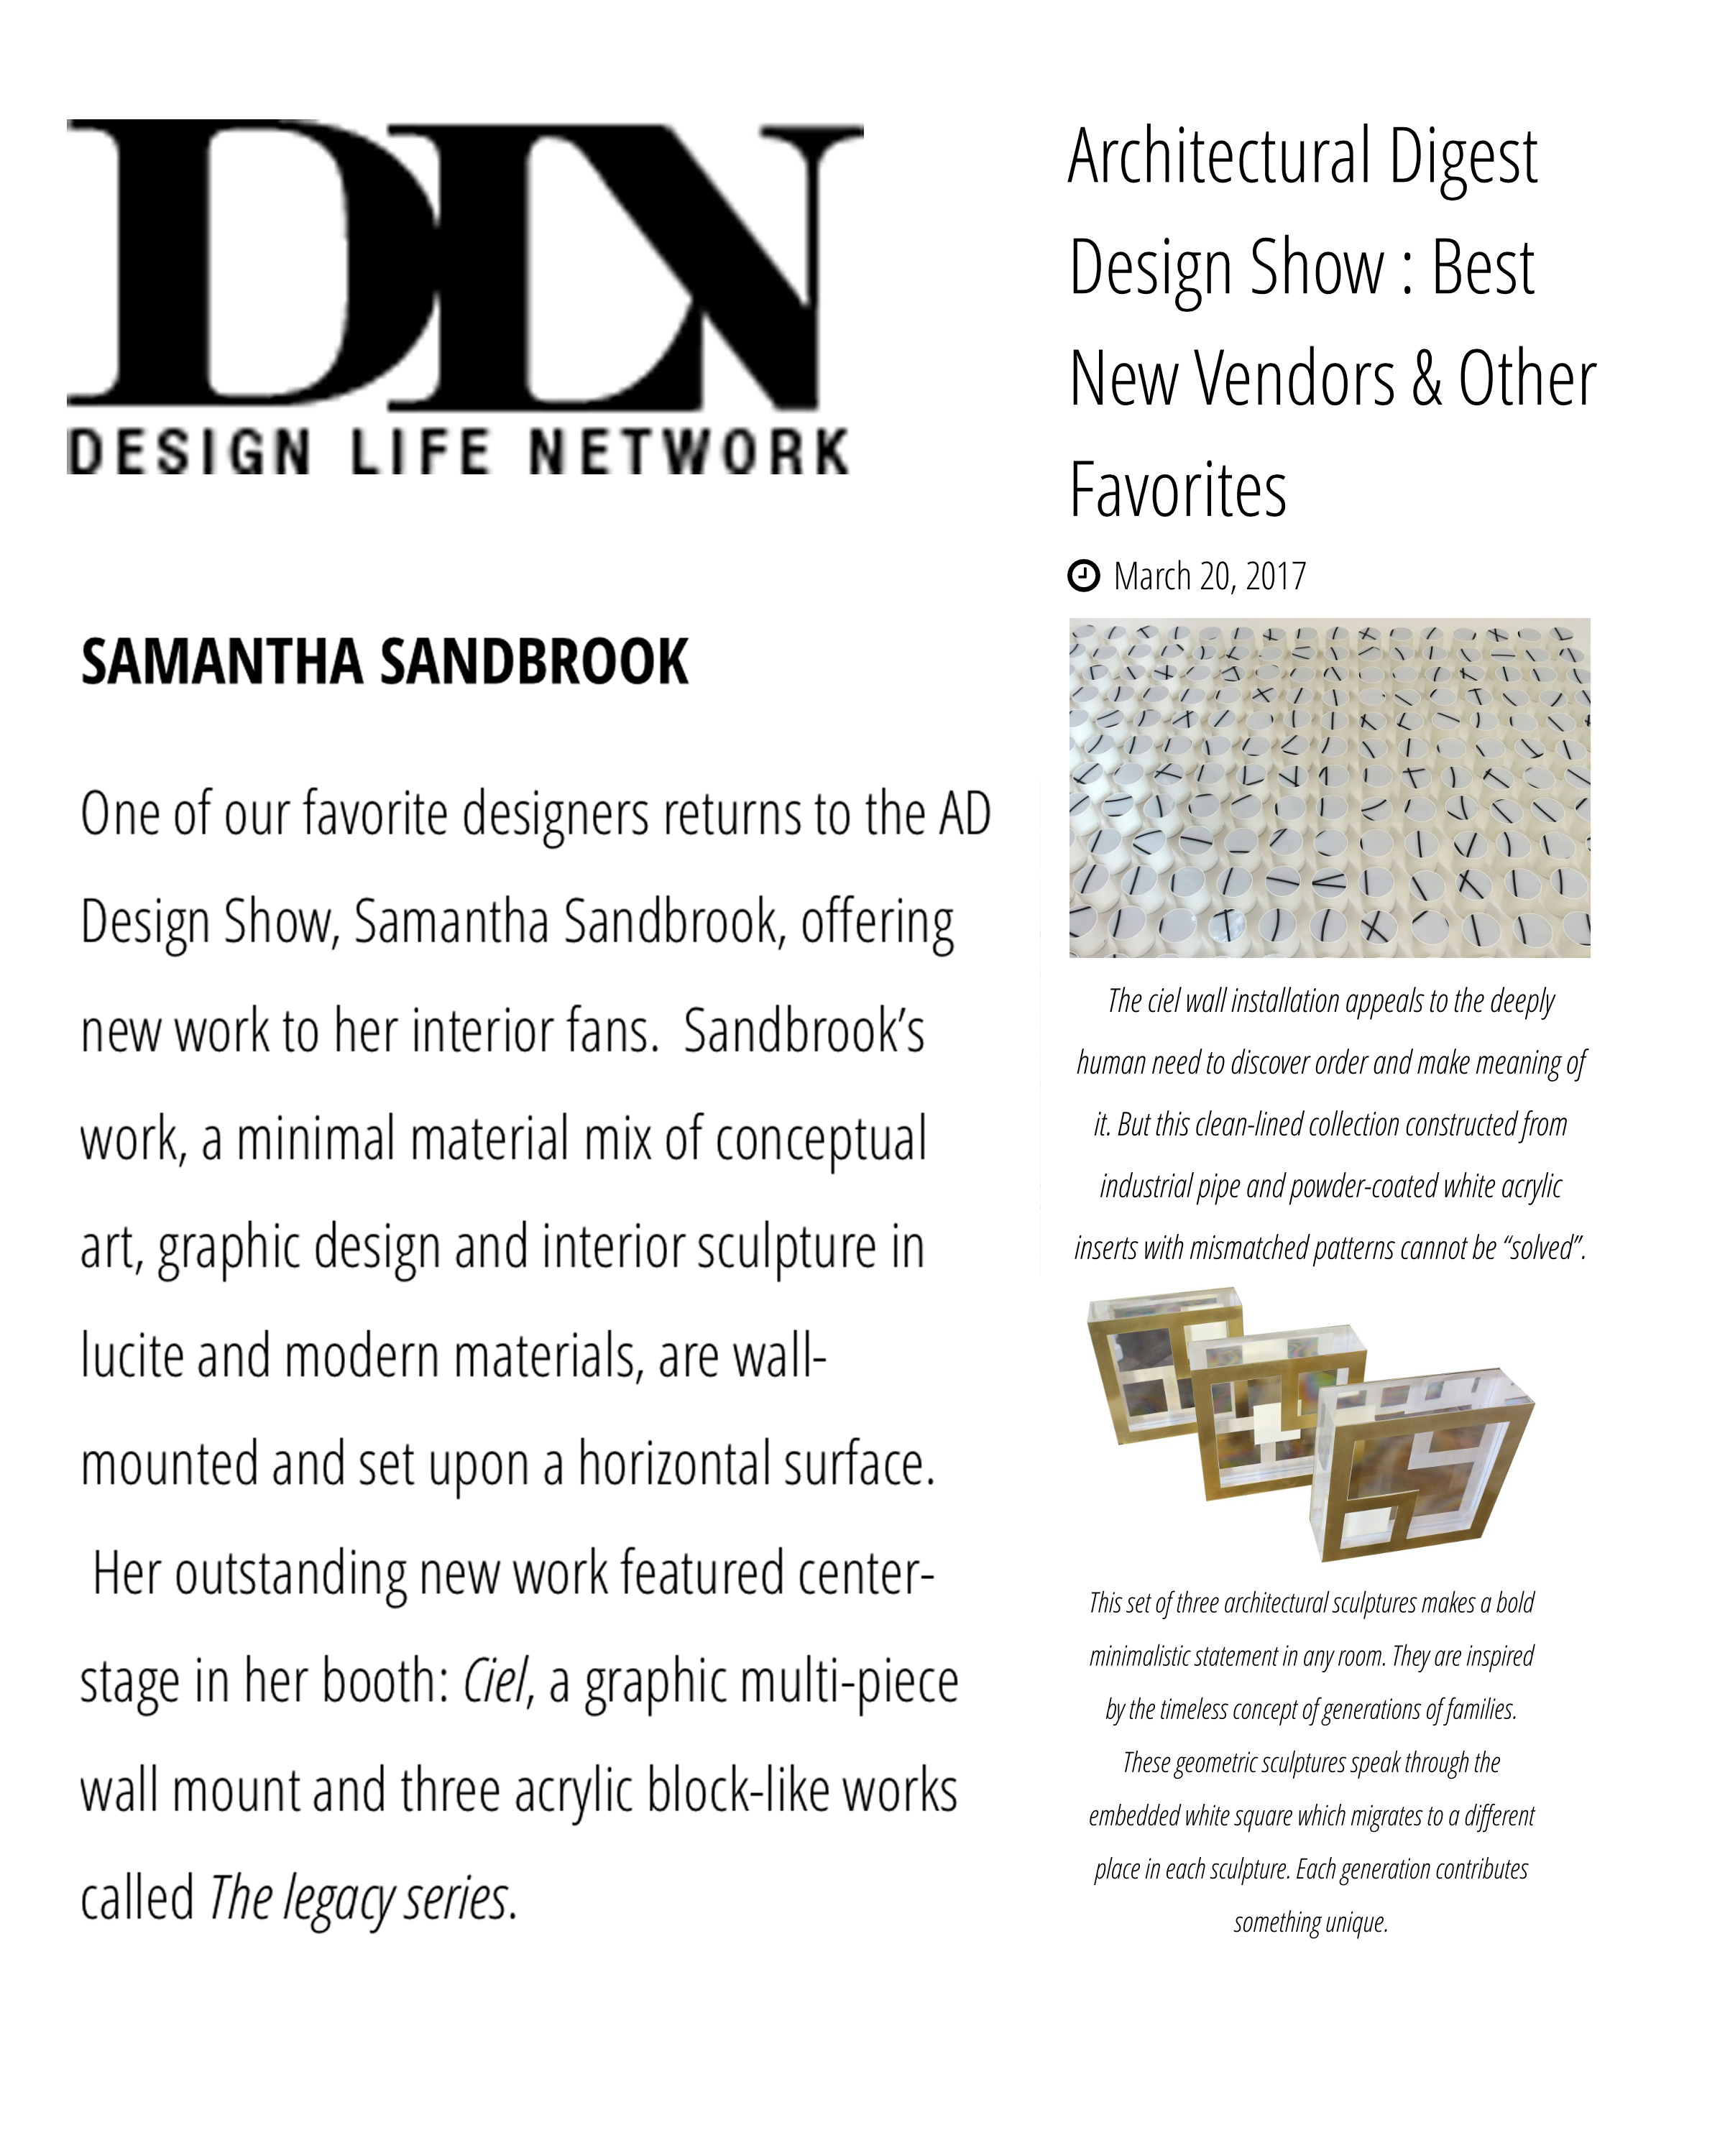 Design Life Network, Architectural Digest Design Show: Best New Vendors & Other Favorites, NYC